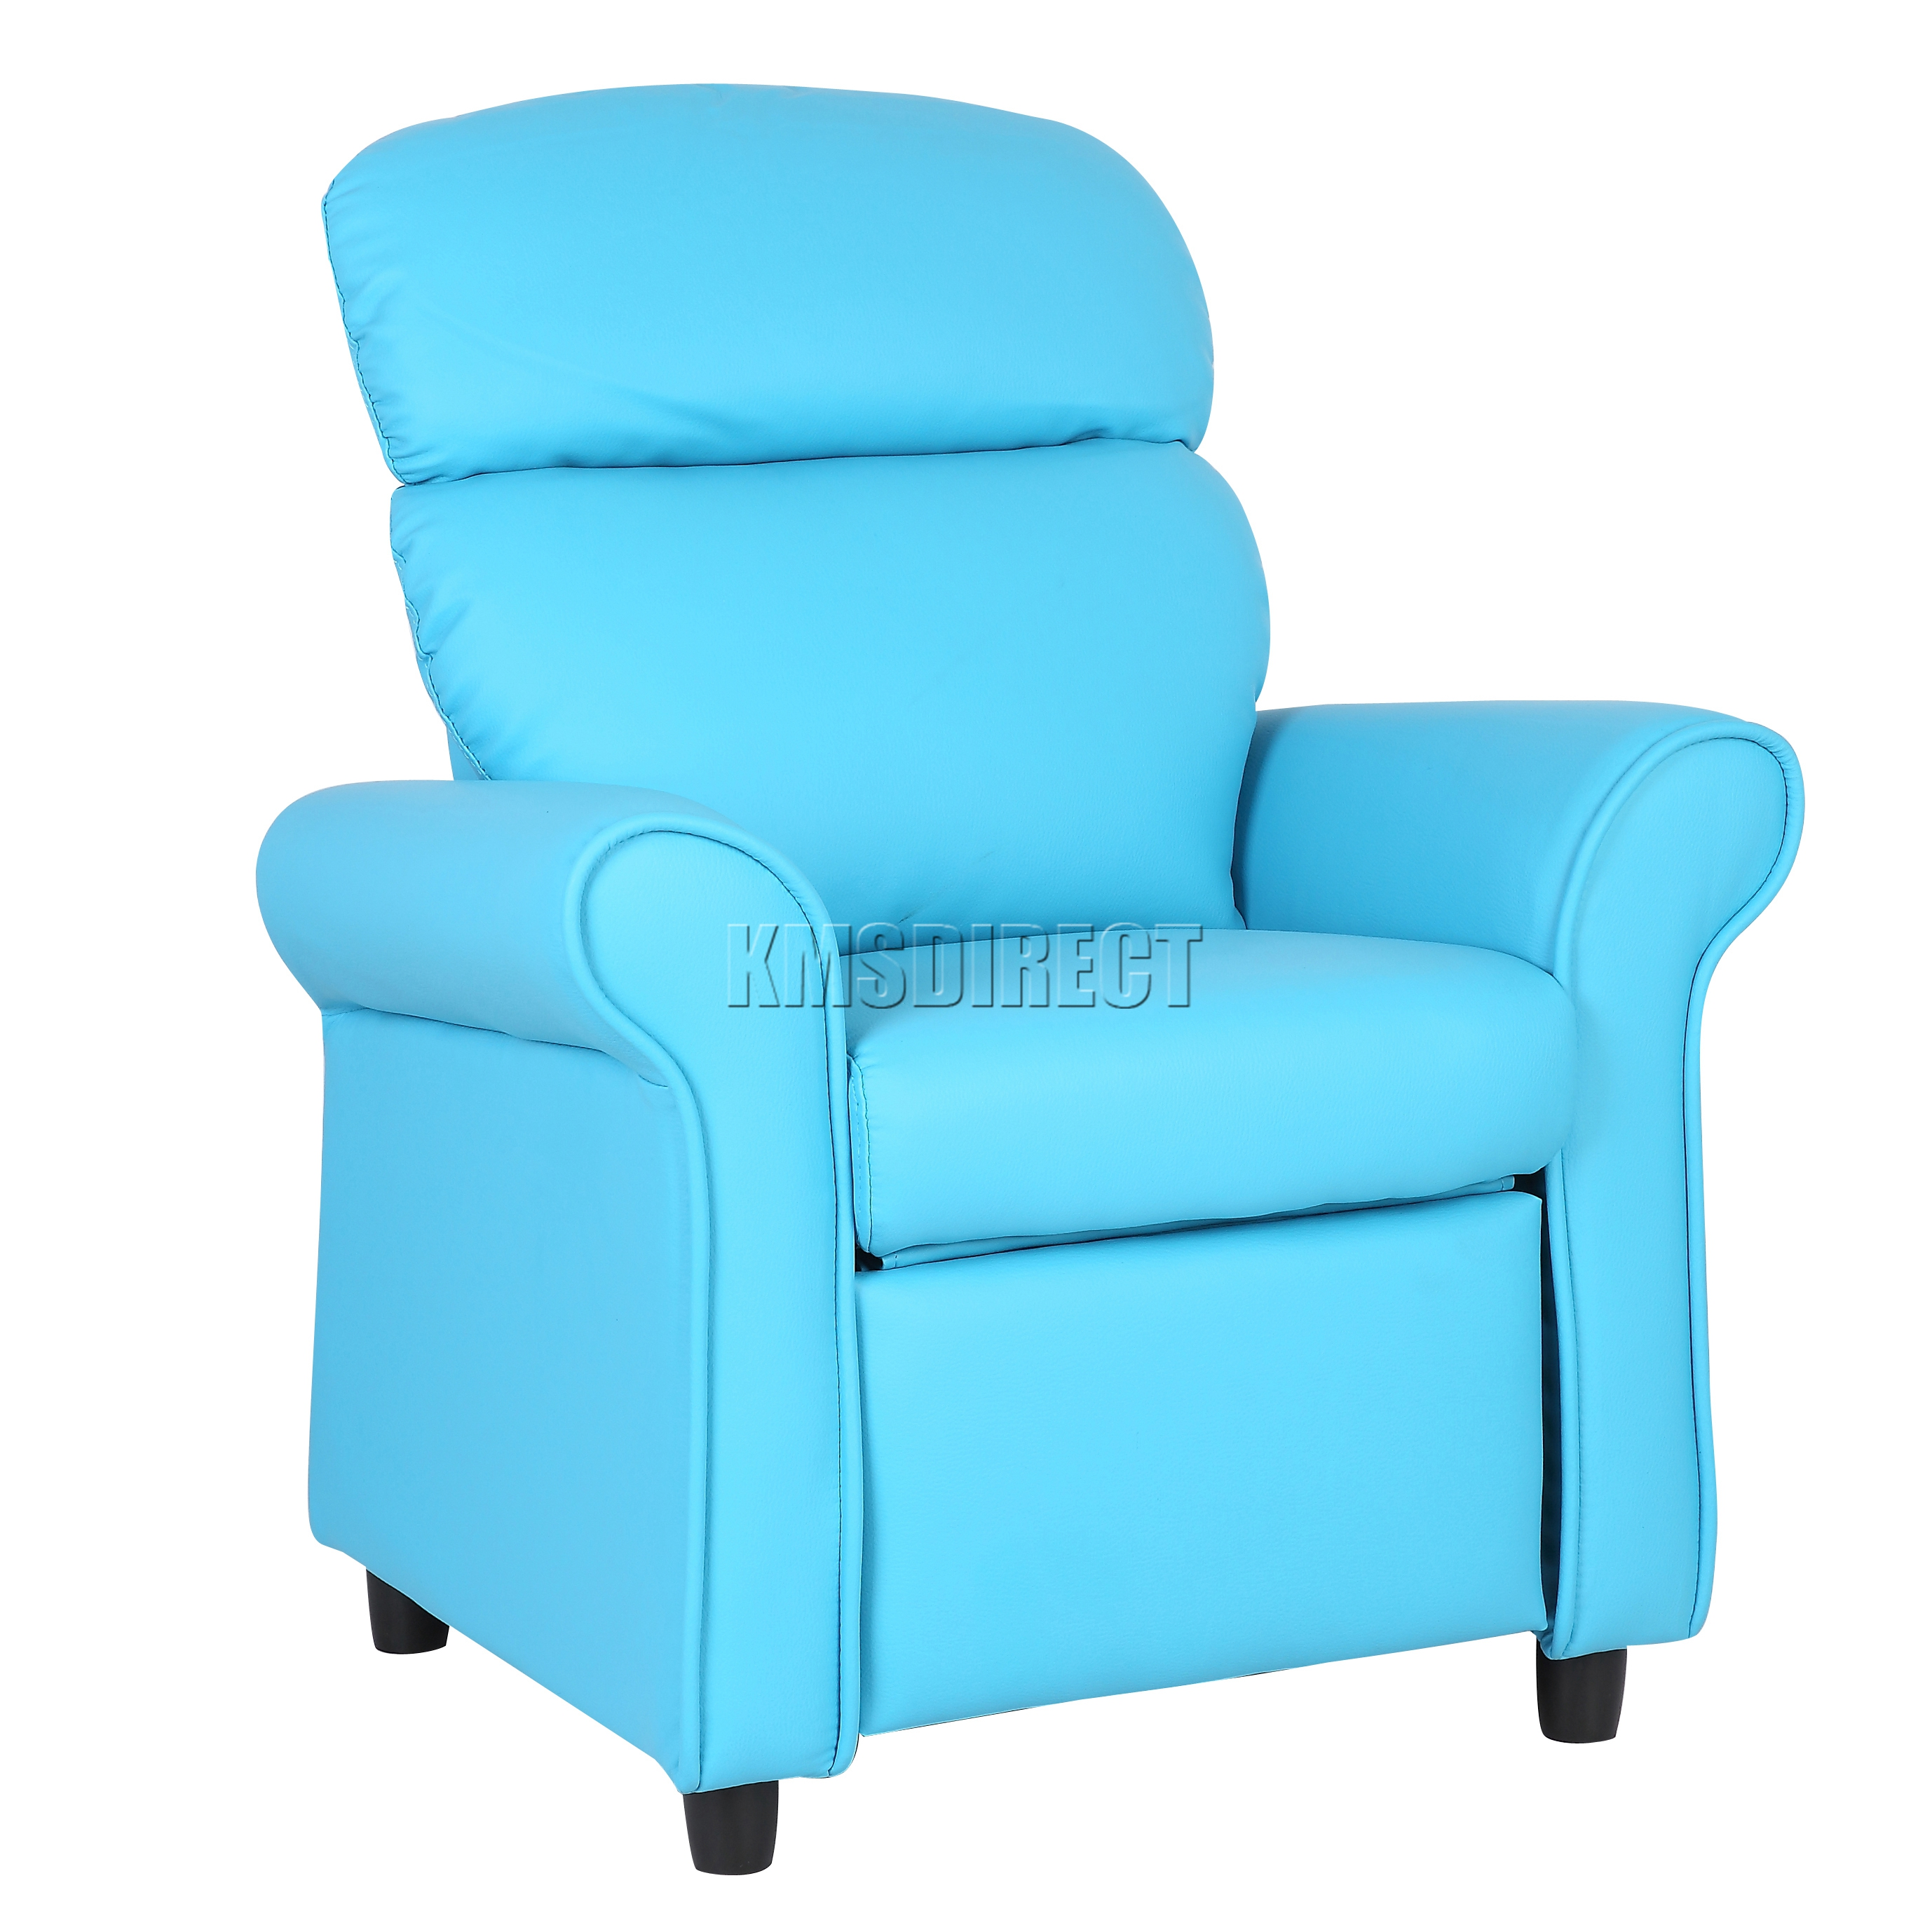 Foxhunter kids recliner armchair games chair sofa children for Toddler leather chair